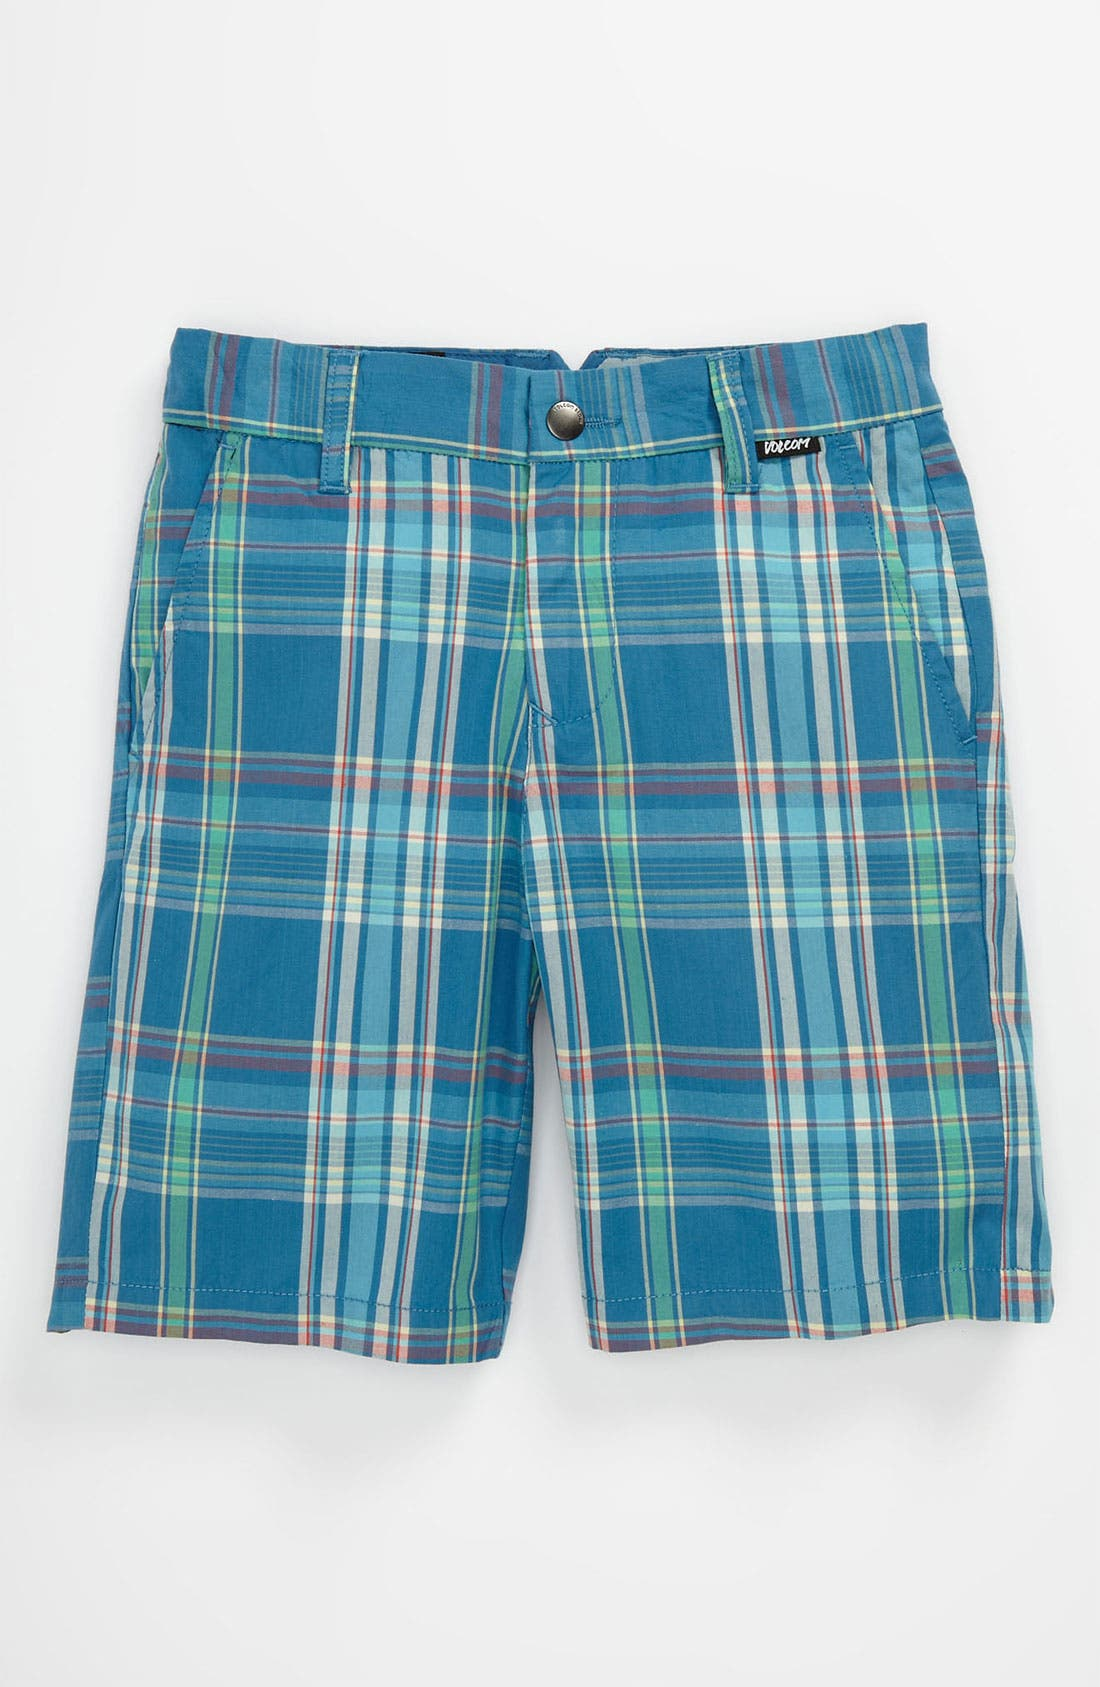 Main Image - Volcom 'Rushy' Plaid Shorts (Big Boys)